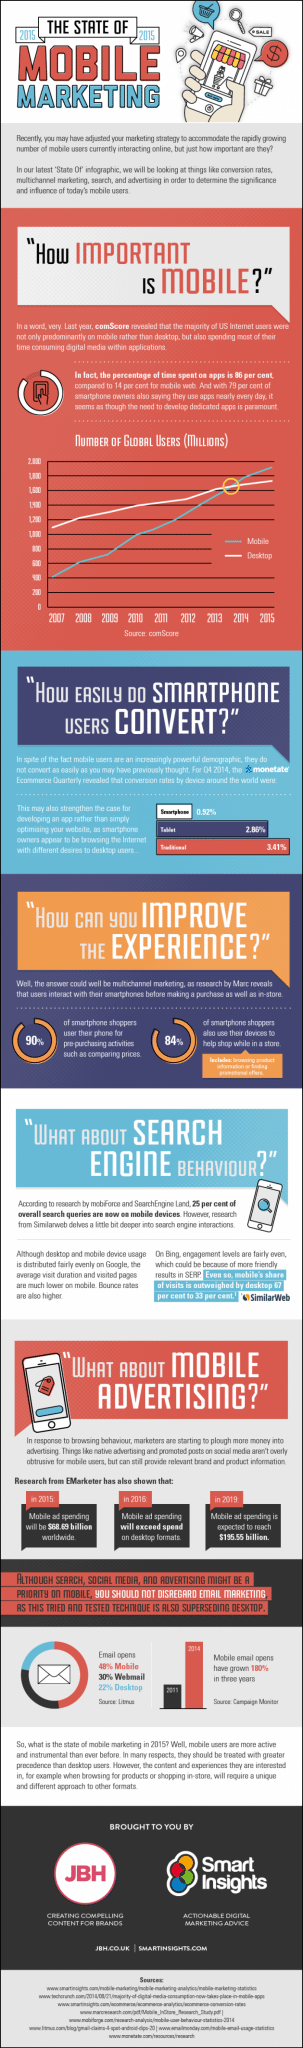 2015-State-of-Mobile-Marketing-infographic-700x4732